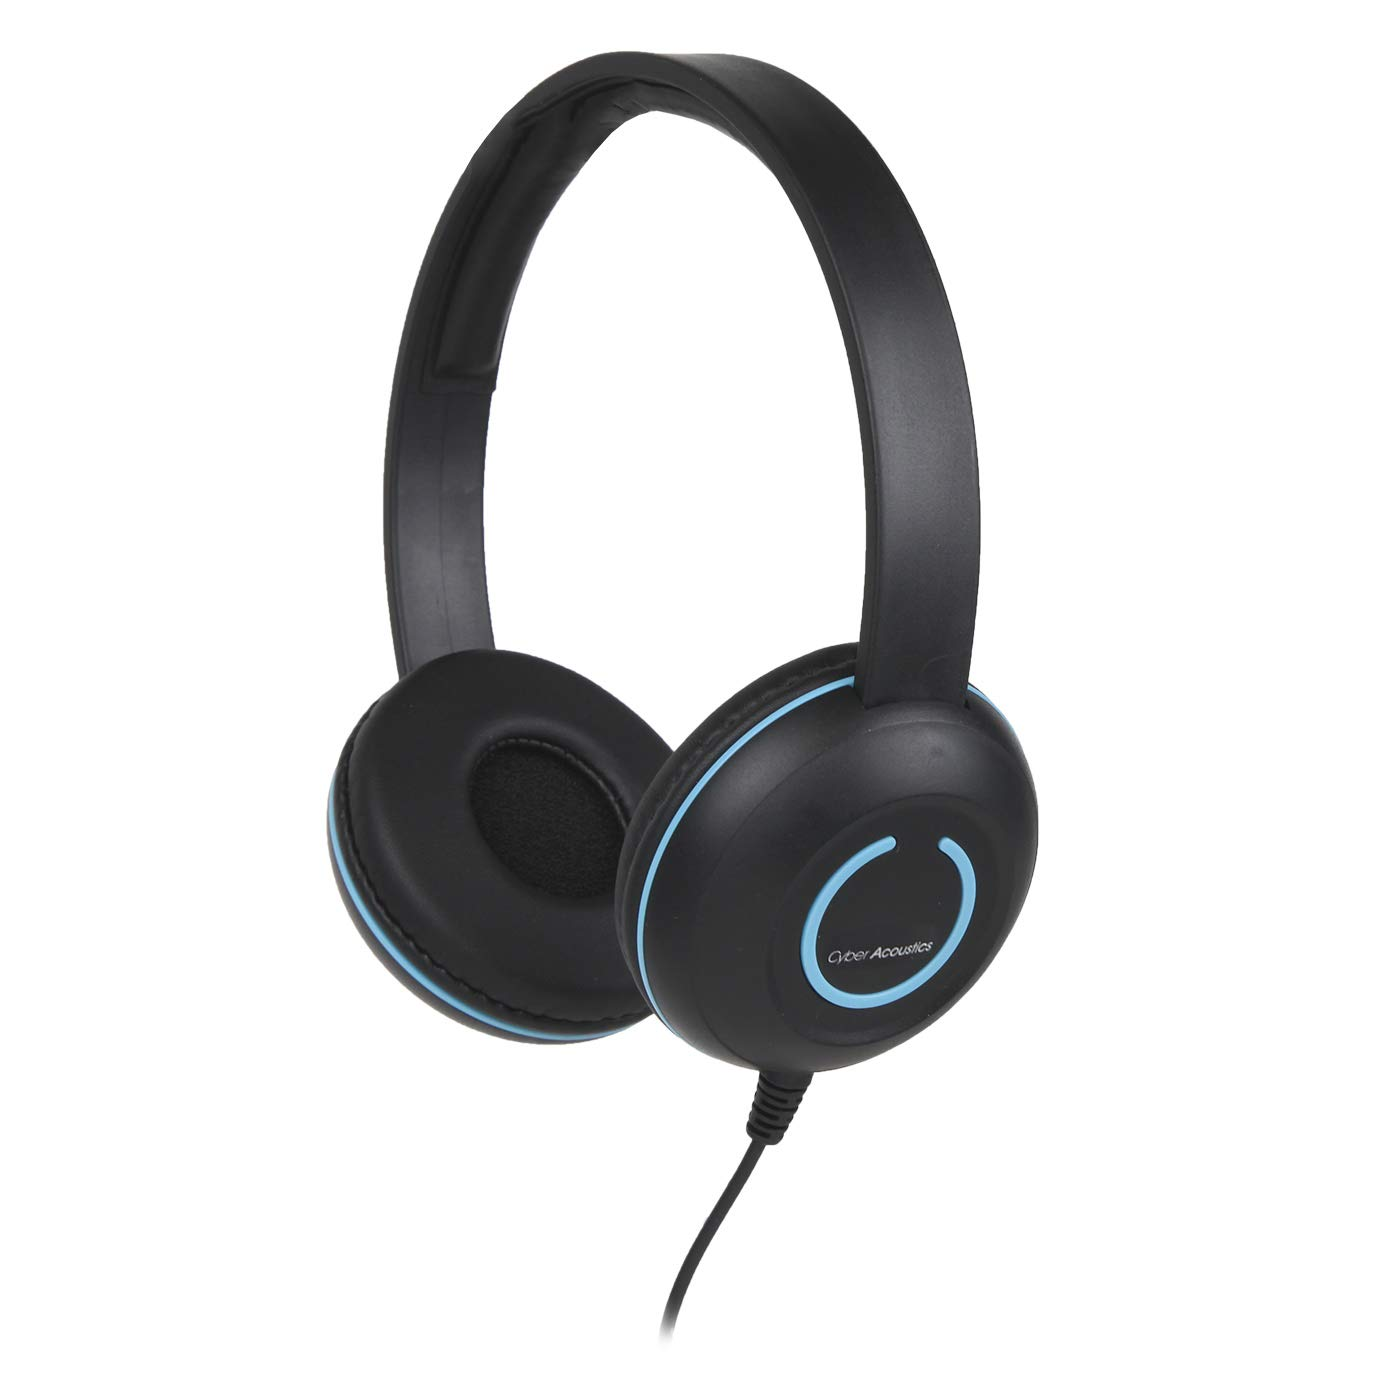 Cyber Acoustics Lightweight On-Ear Headphones/Headset with noise canceling microphone and in-line Volume/Play/Pause controls and 3.5mm plug. Great for use with cell phones,tablets and laptops (AC5010)